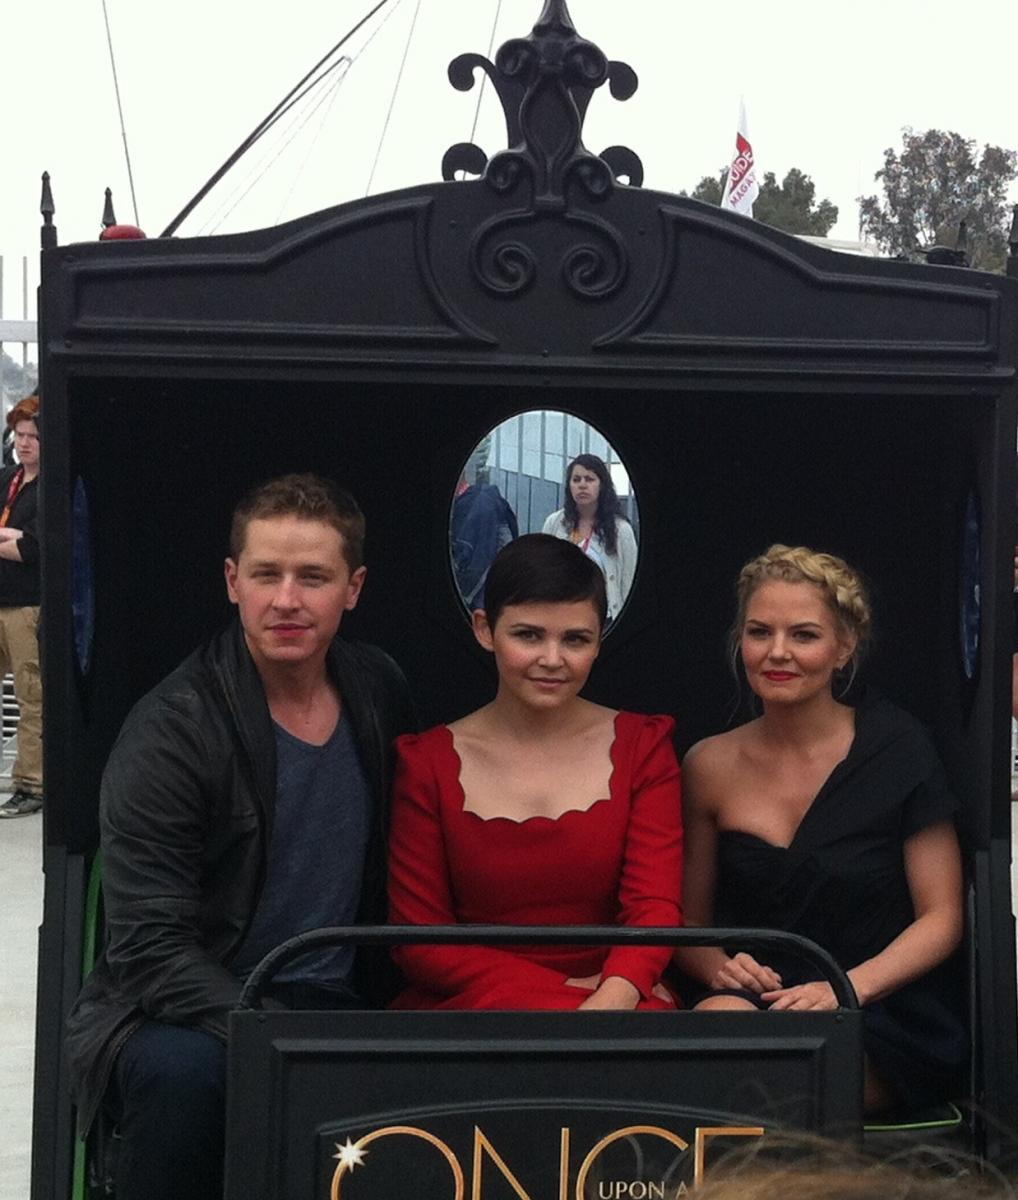 L'arrivo di Once Upon A Time al Comic Con